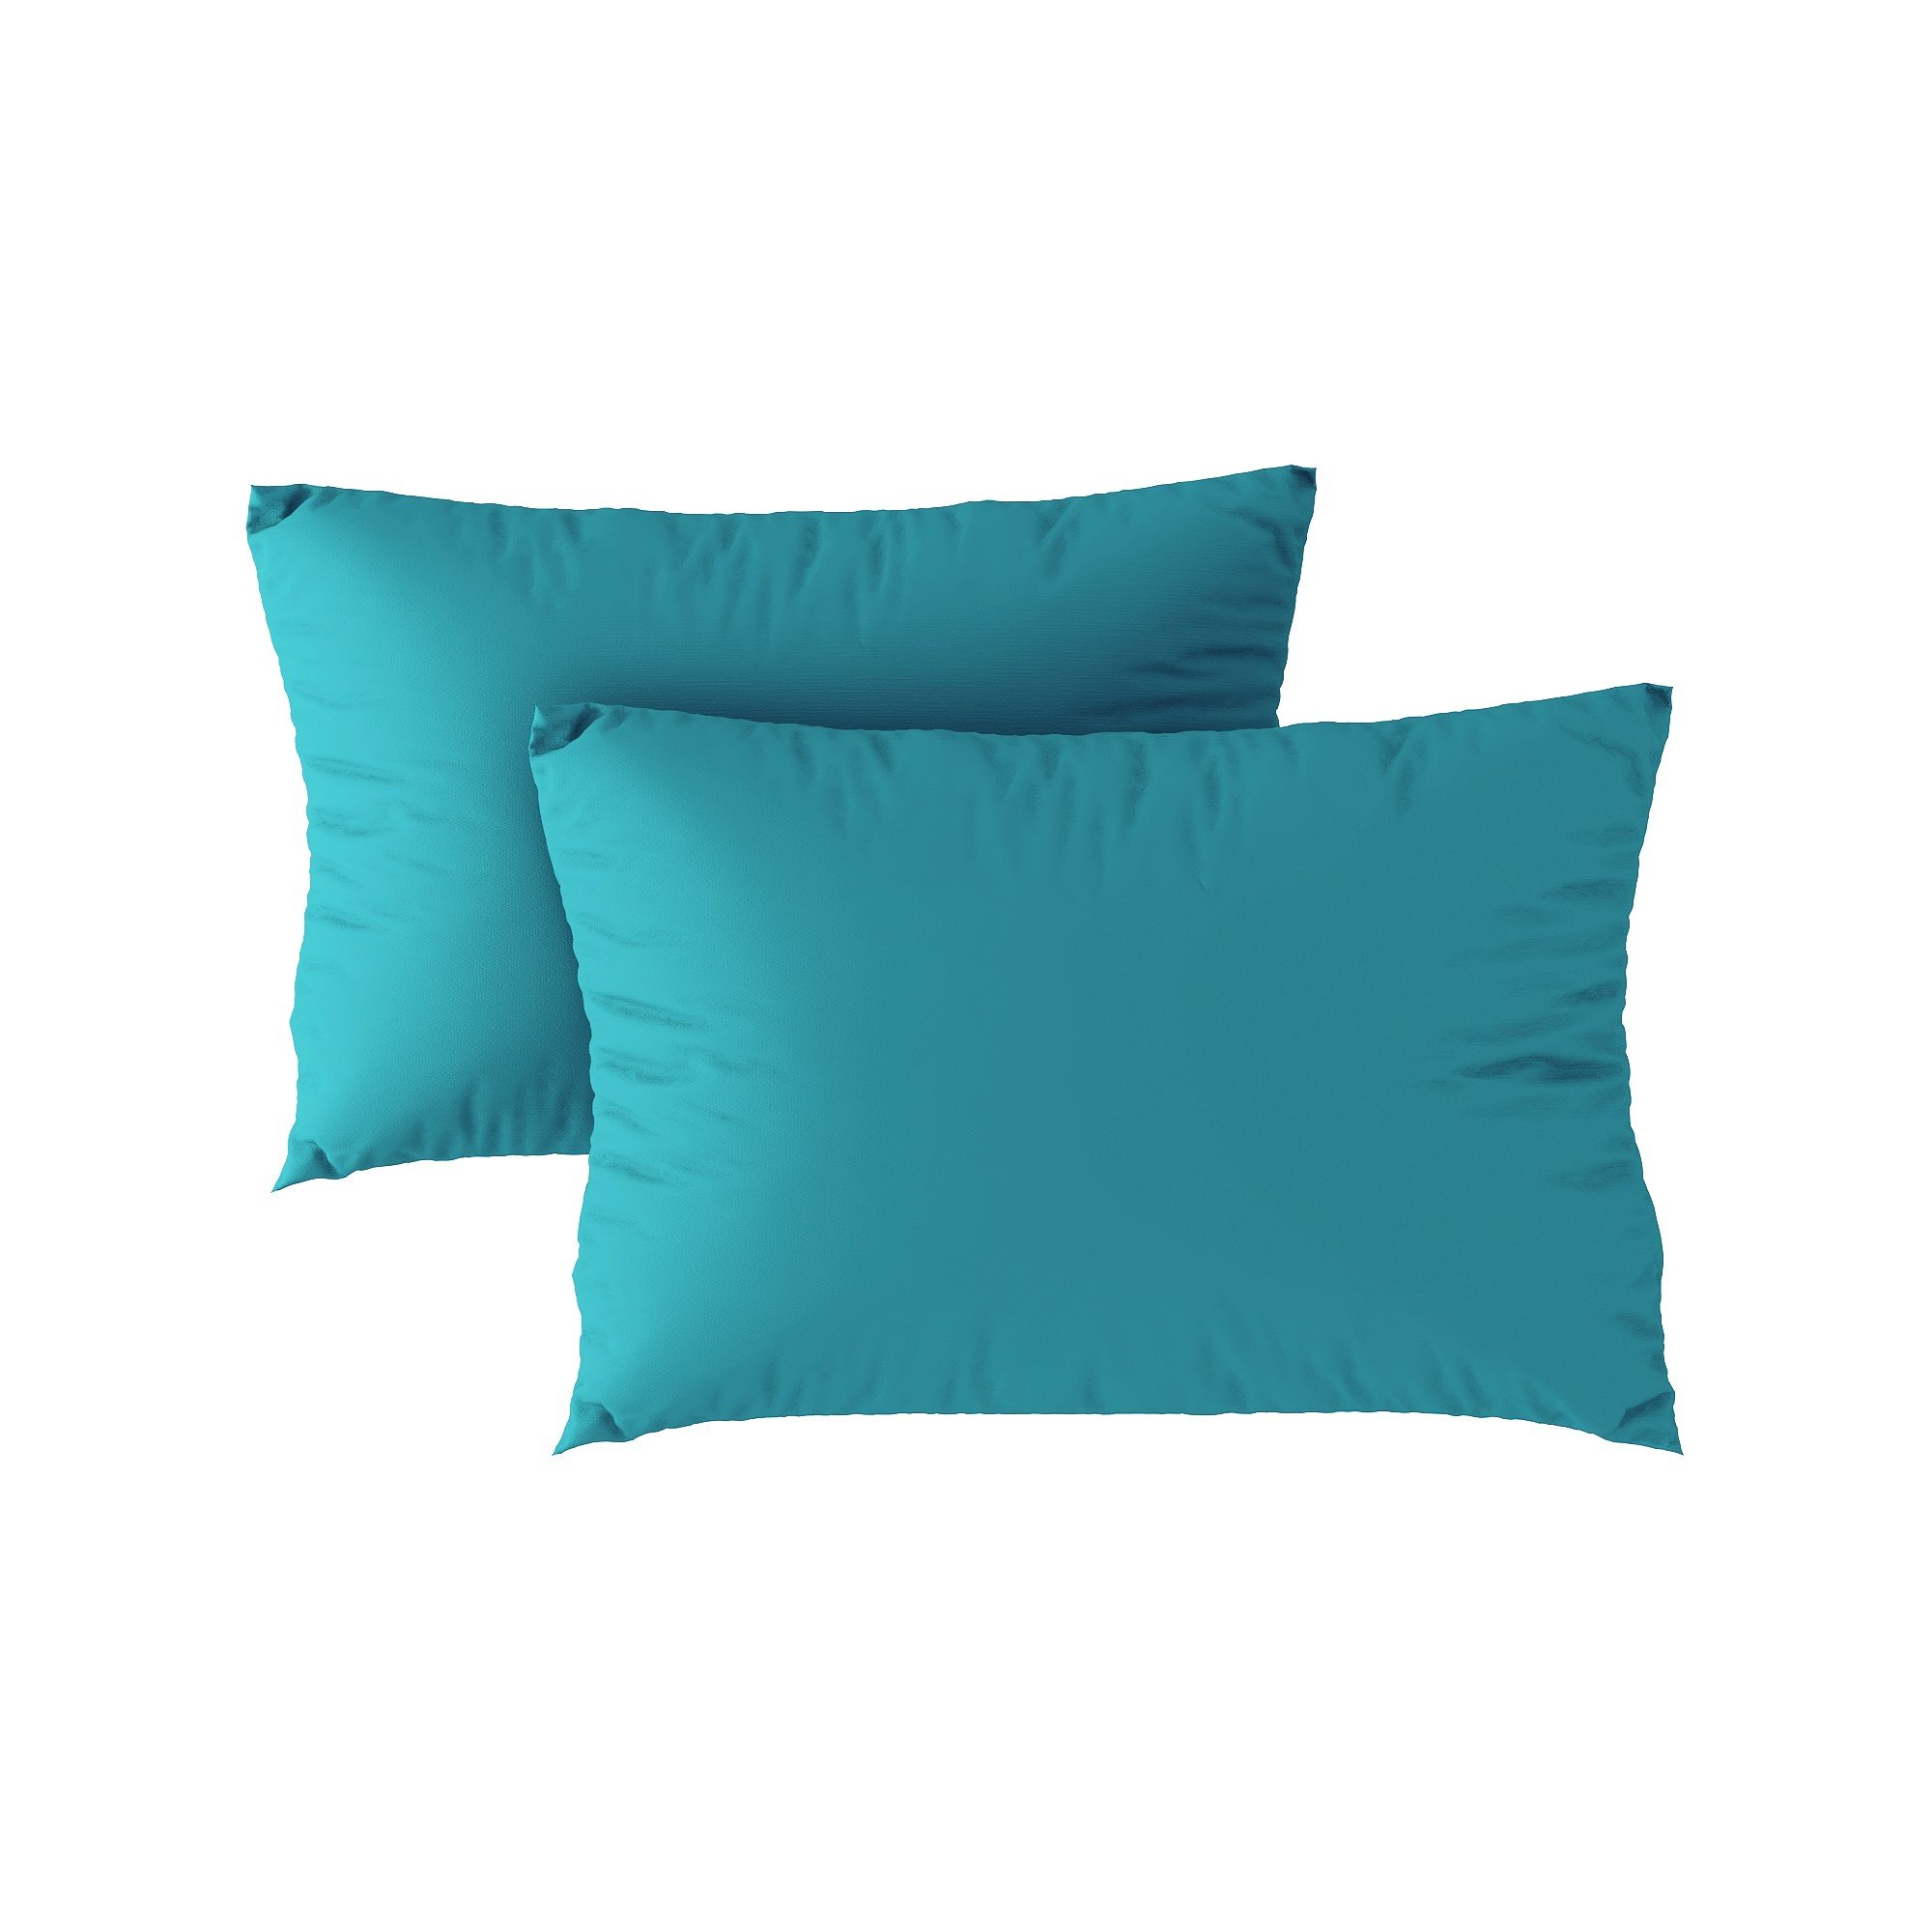 Standard pillow case 15 Poseidon green (2pcs)